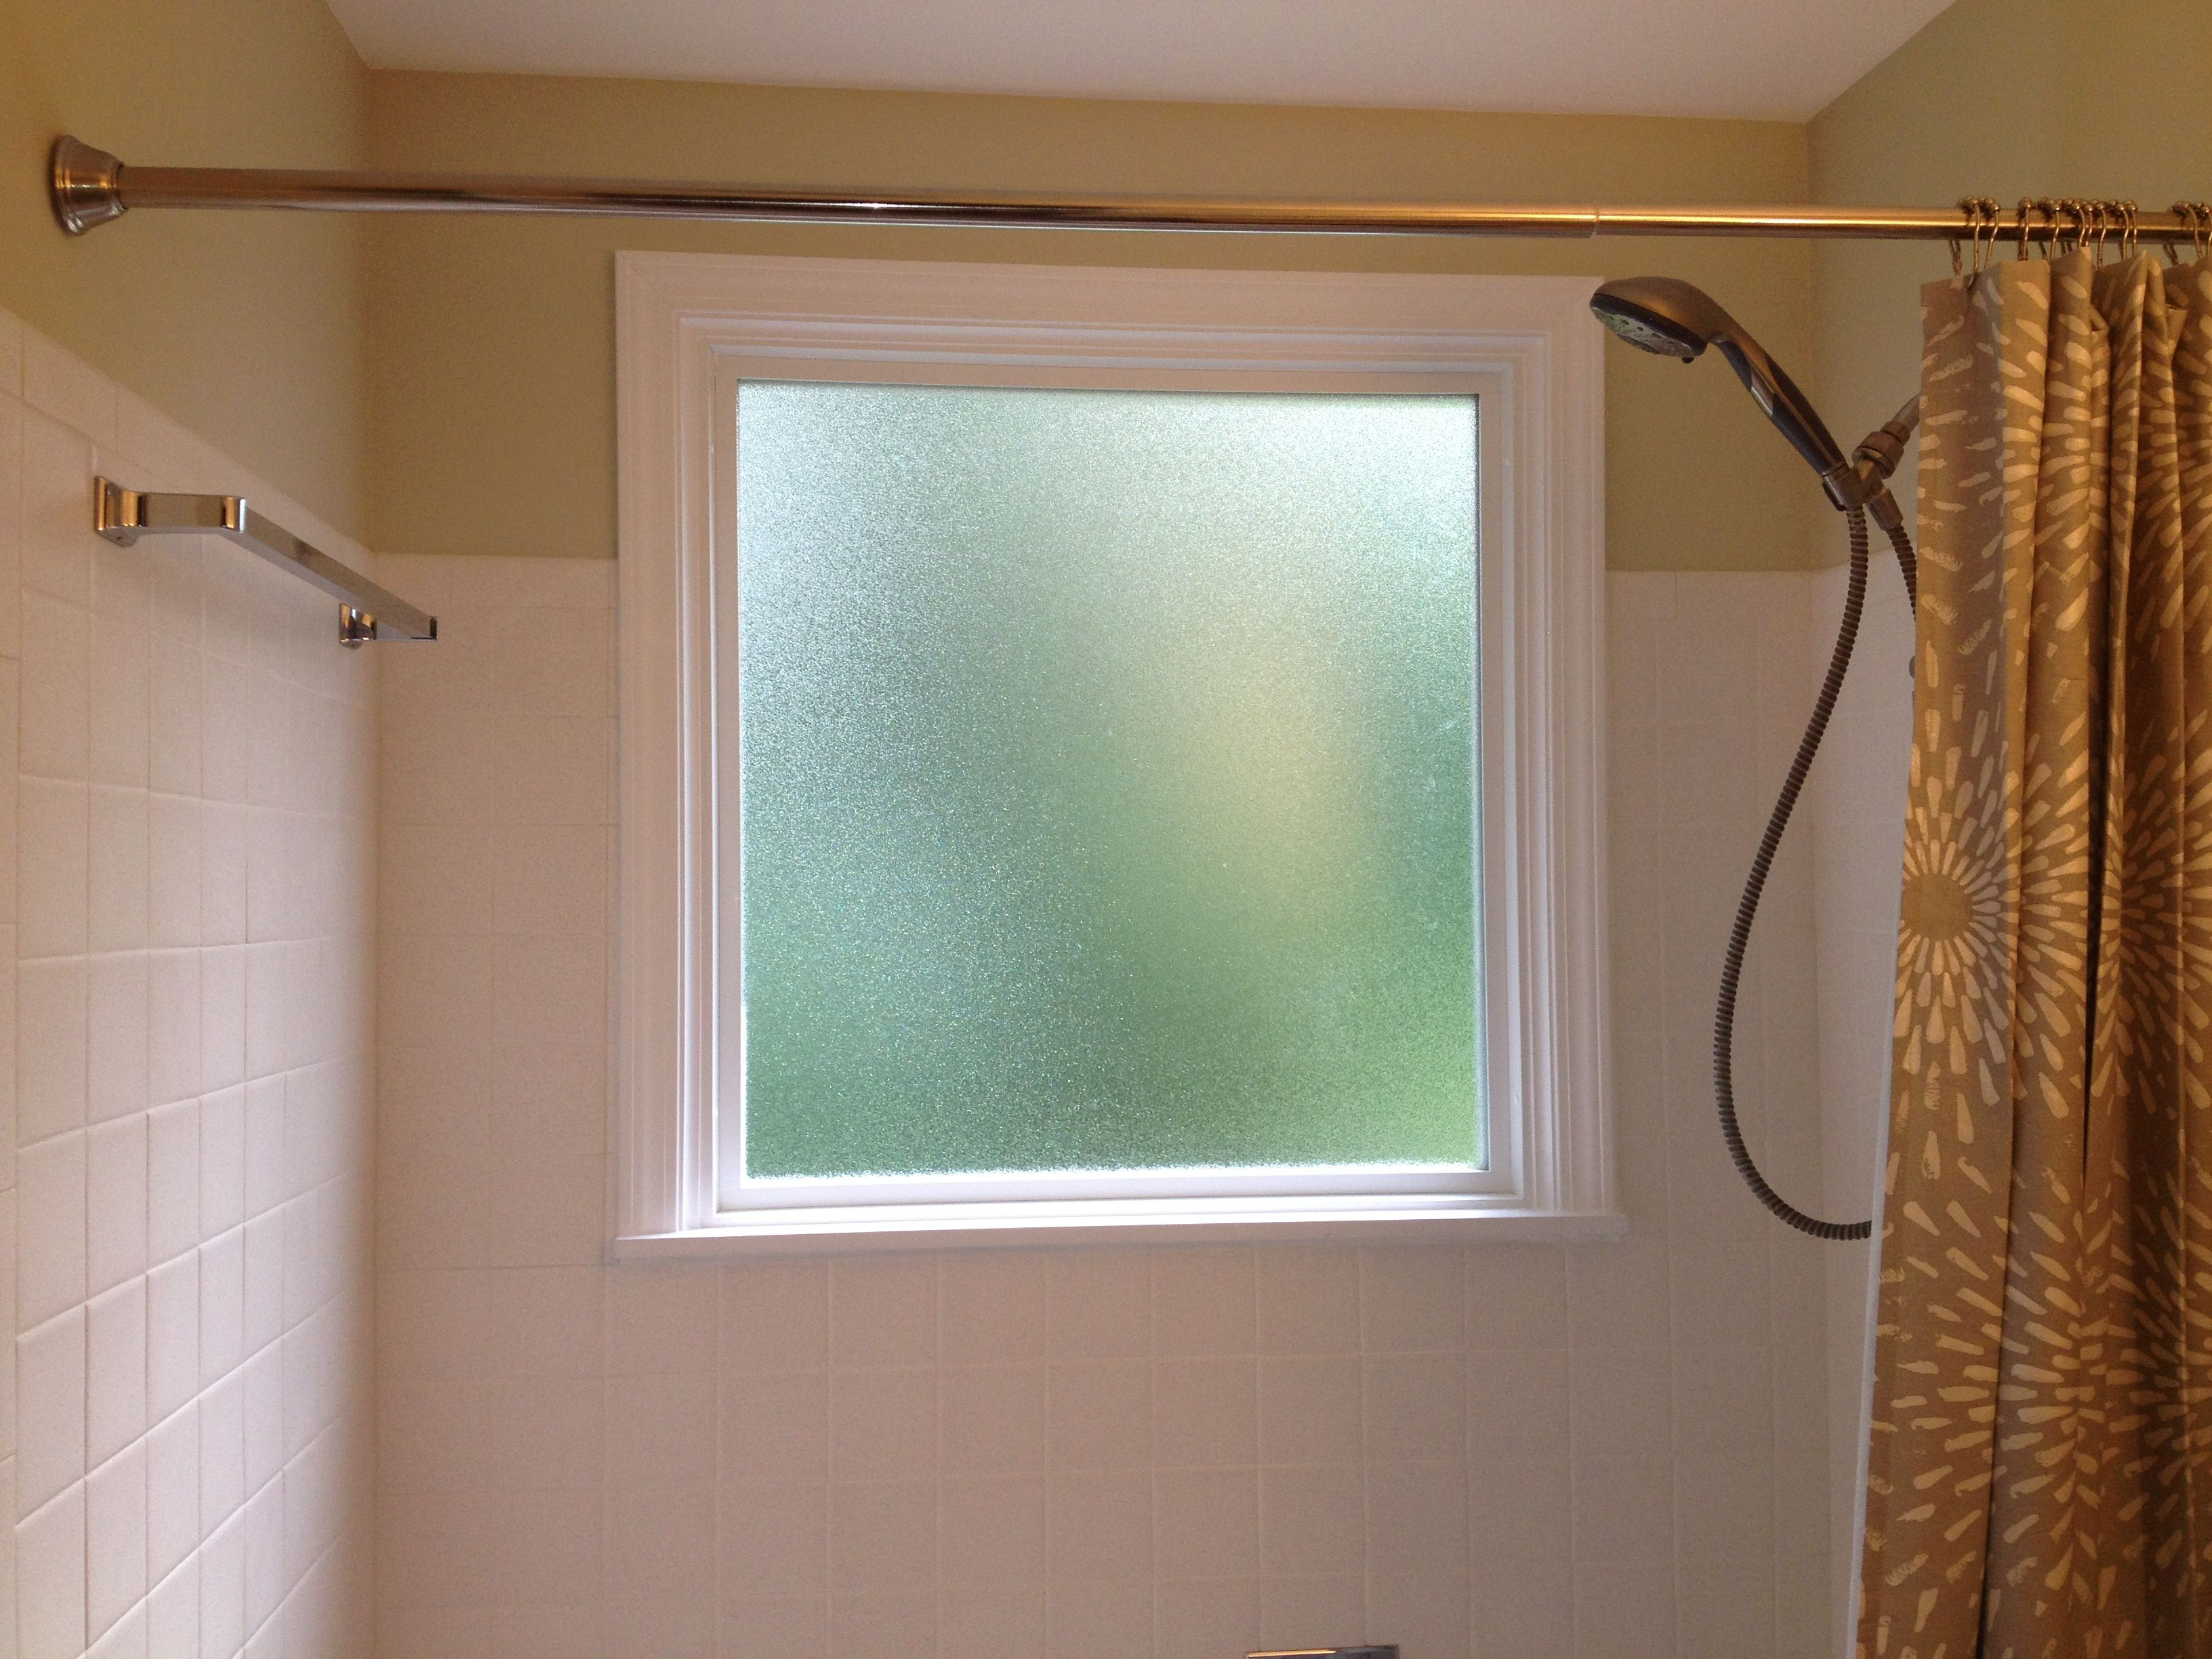 Bathroom lighting window wall paint curtain door outdoor shower - What To Do If You Have A Window In Your Shower